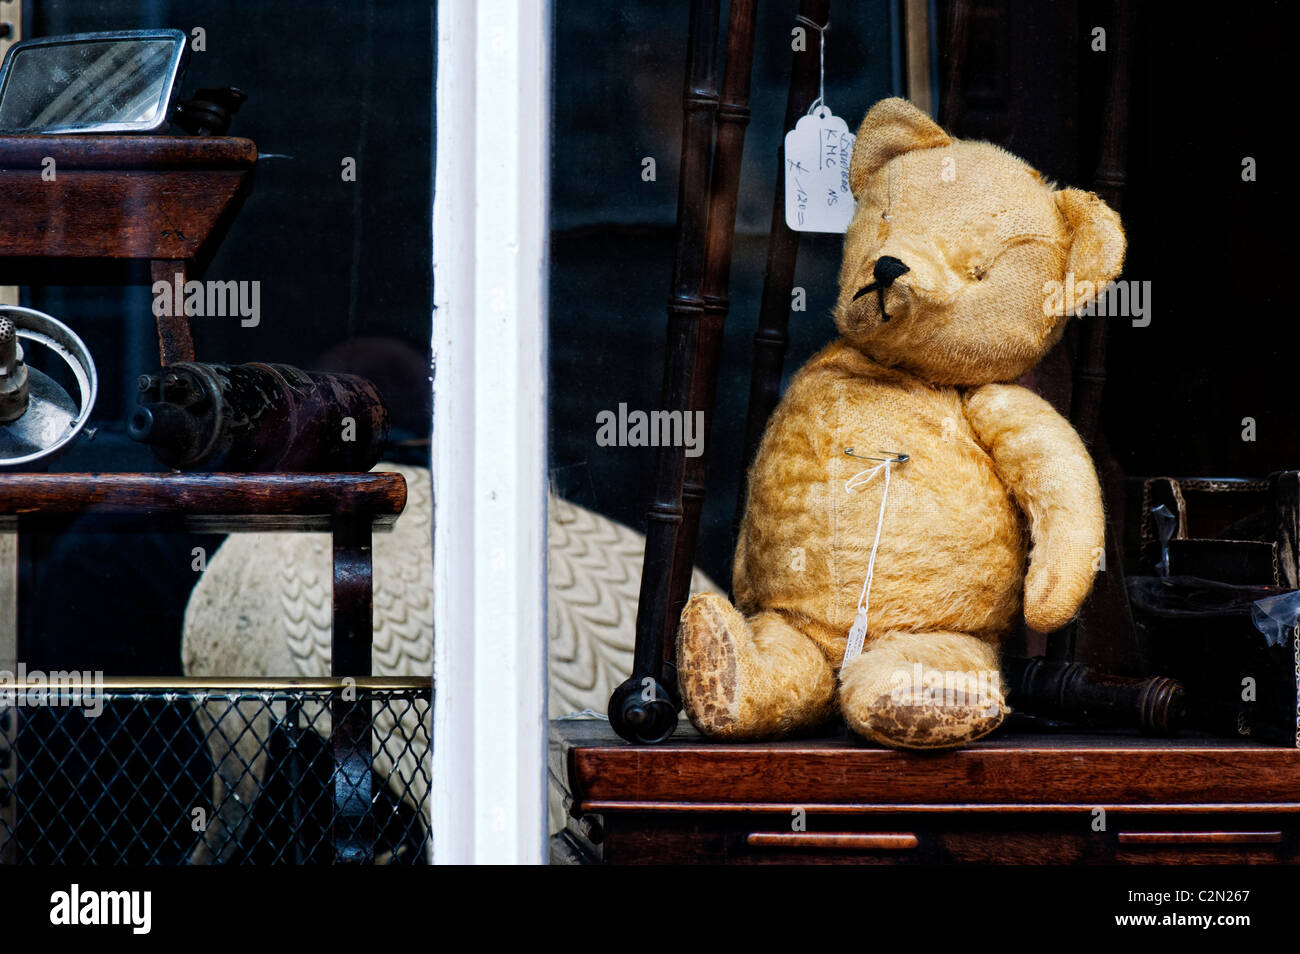 Old worn well loved teddy bear in an antique shop window. Oxfordshire, England Stock Photo